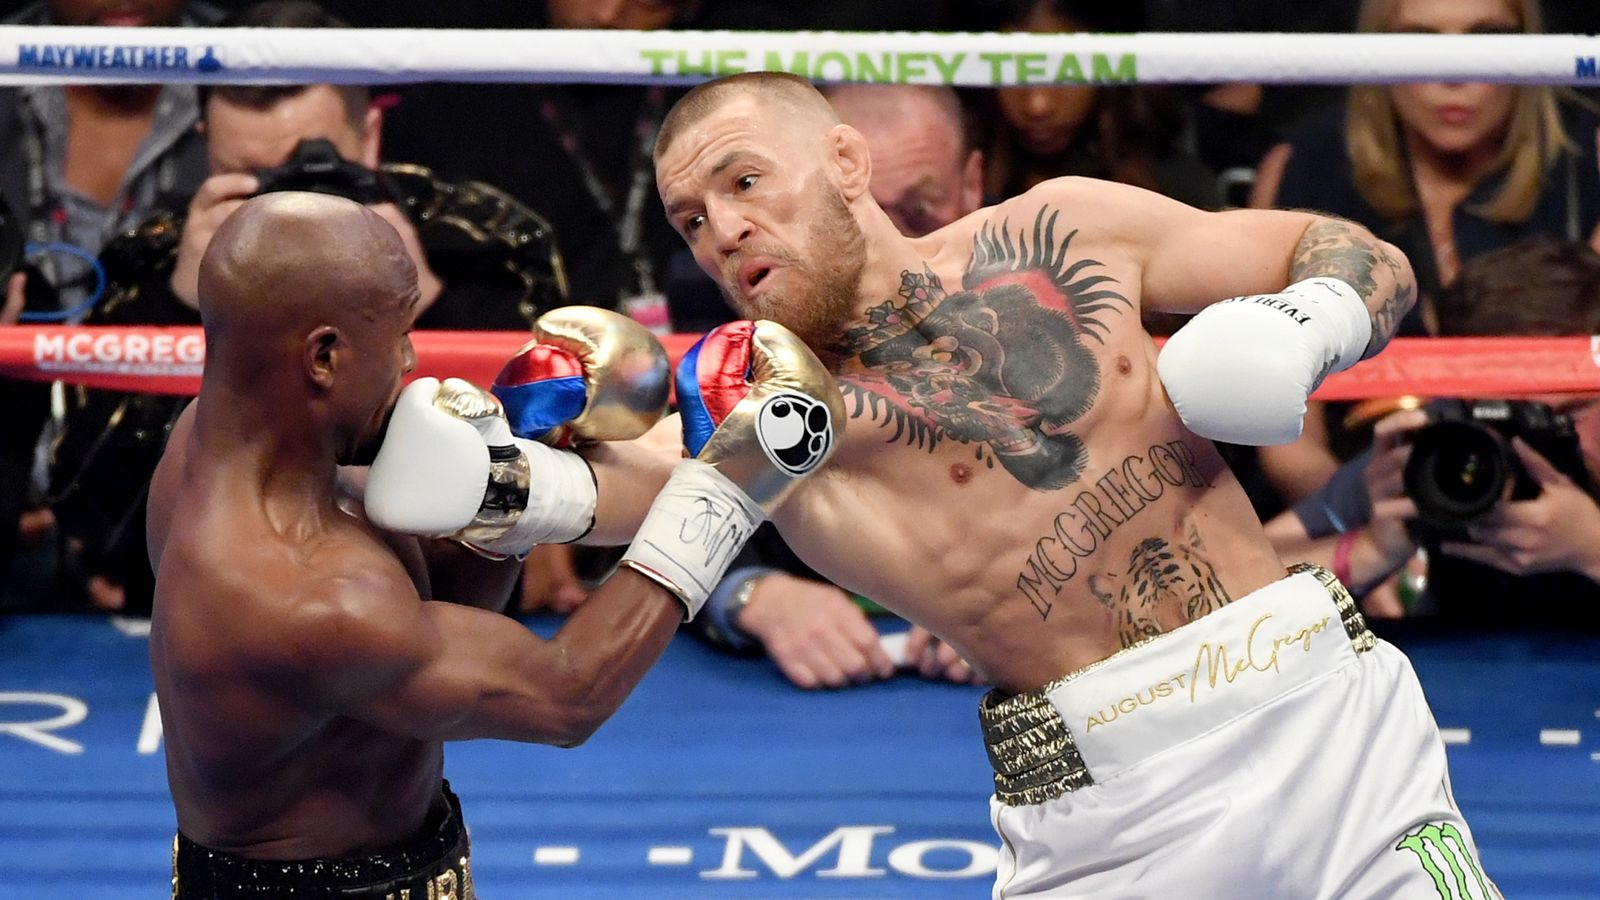 Places to watch McGregor Mayweather fight? : sanantonio